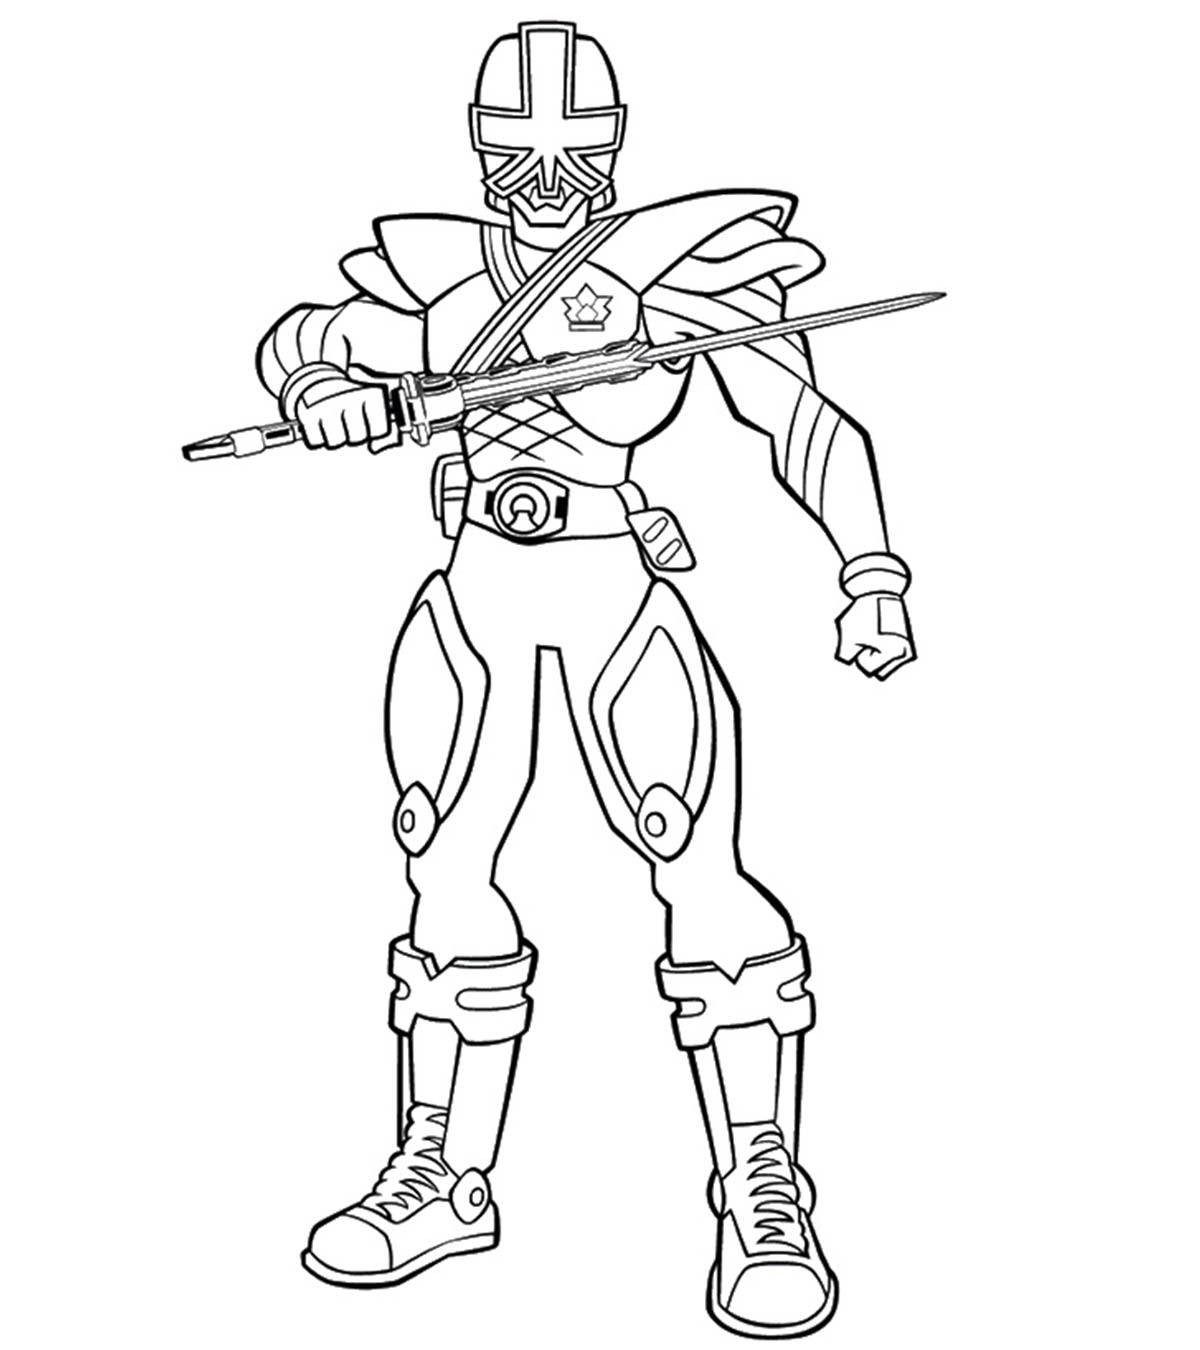 Top 25 Free Printable Power Rangers Megaforce Coloring Pages Online